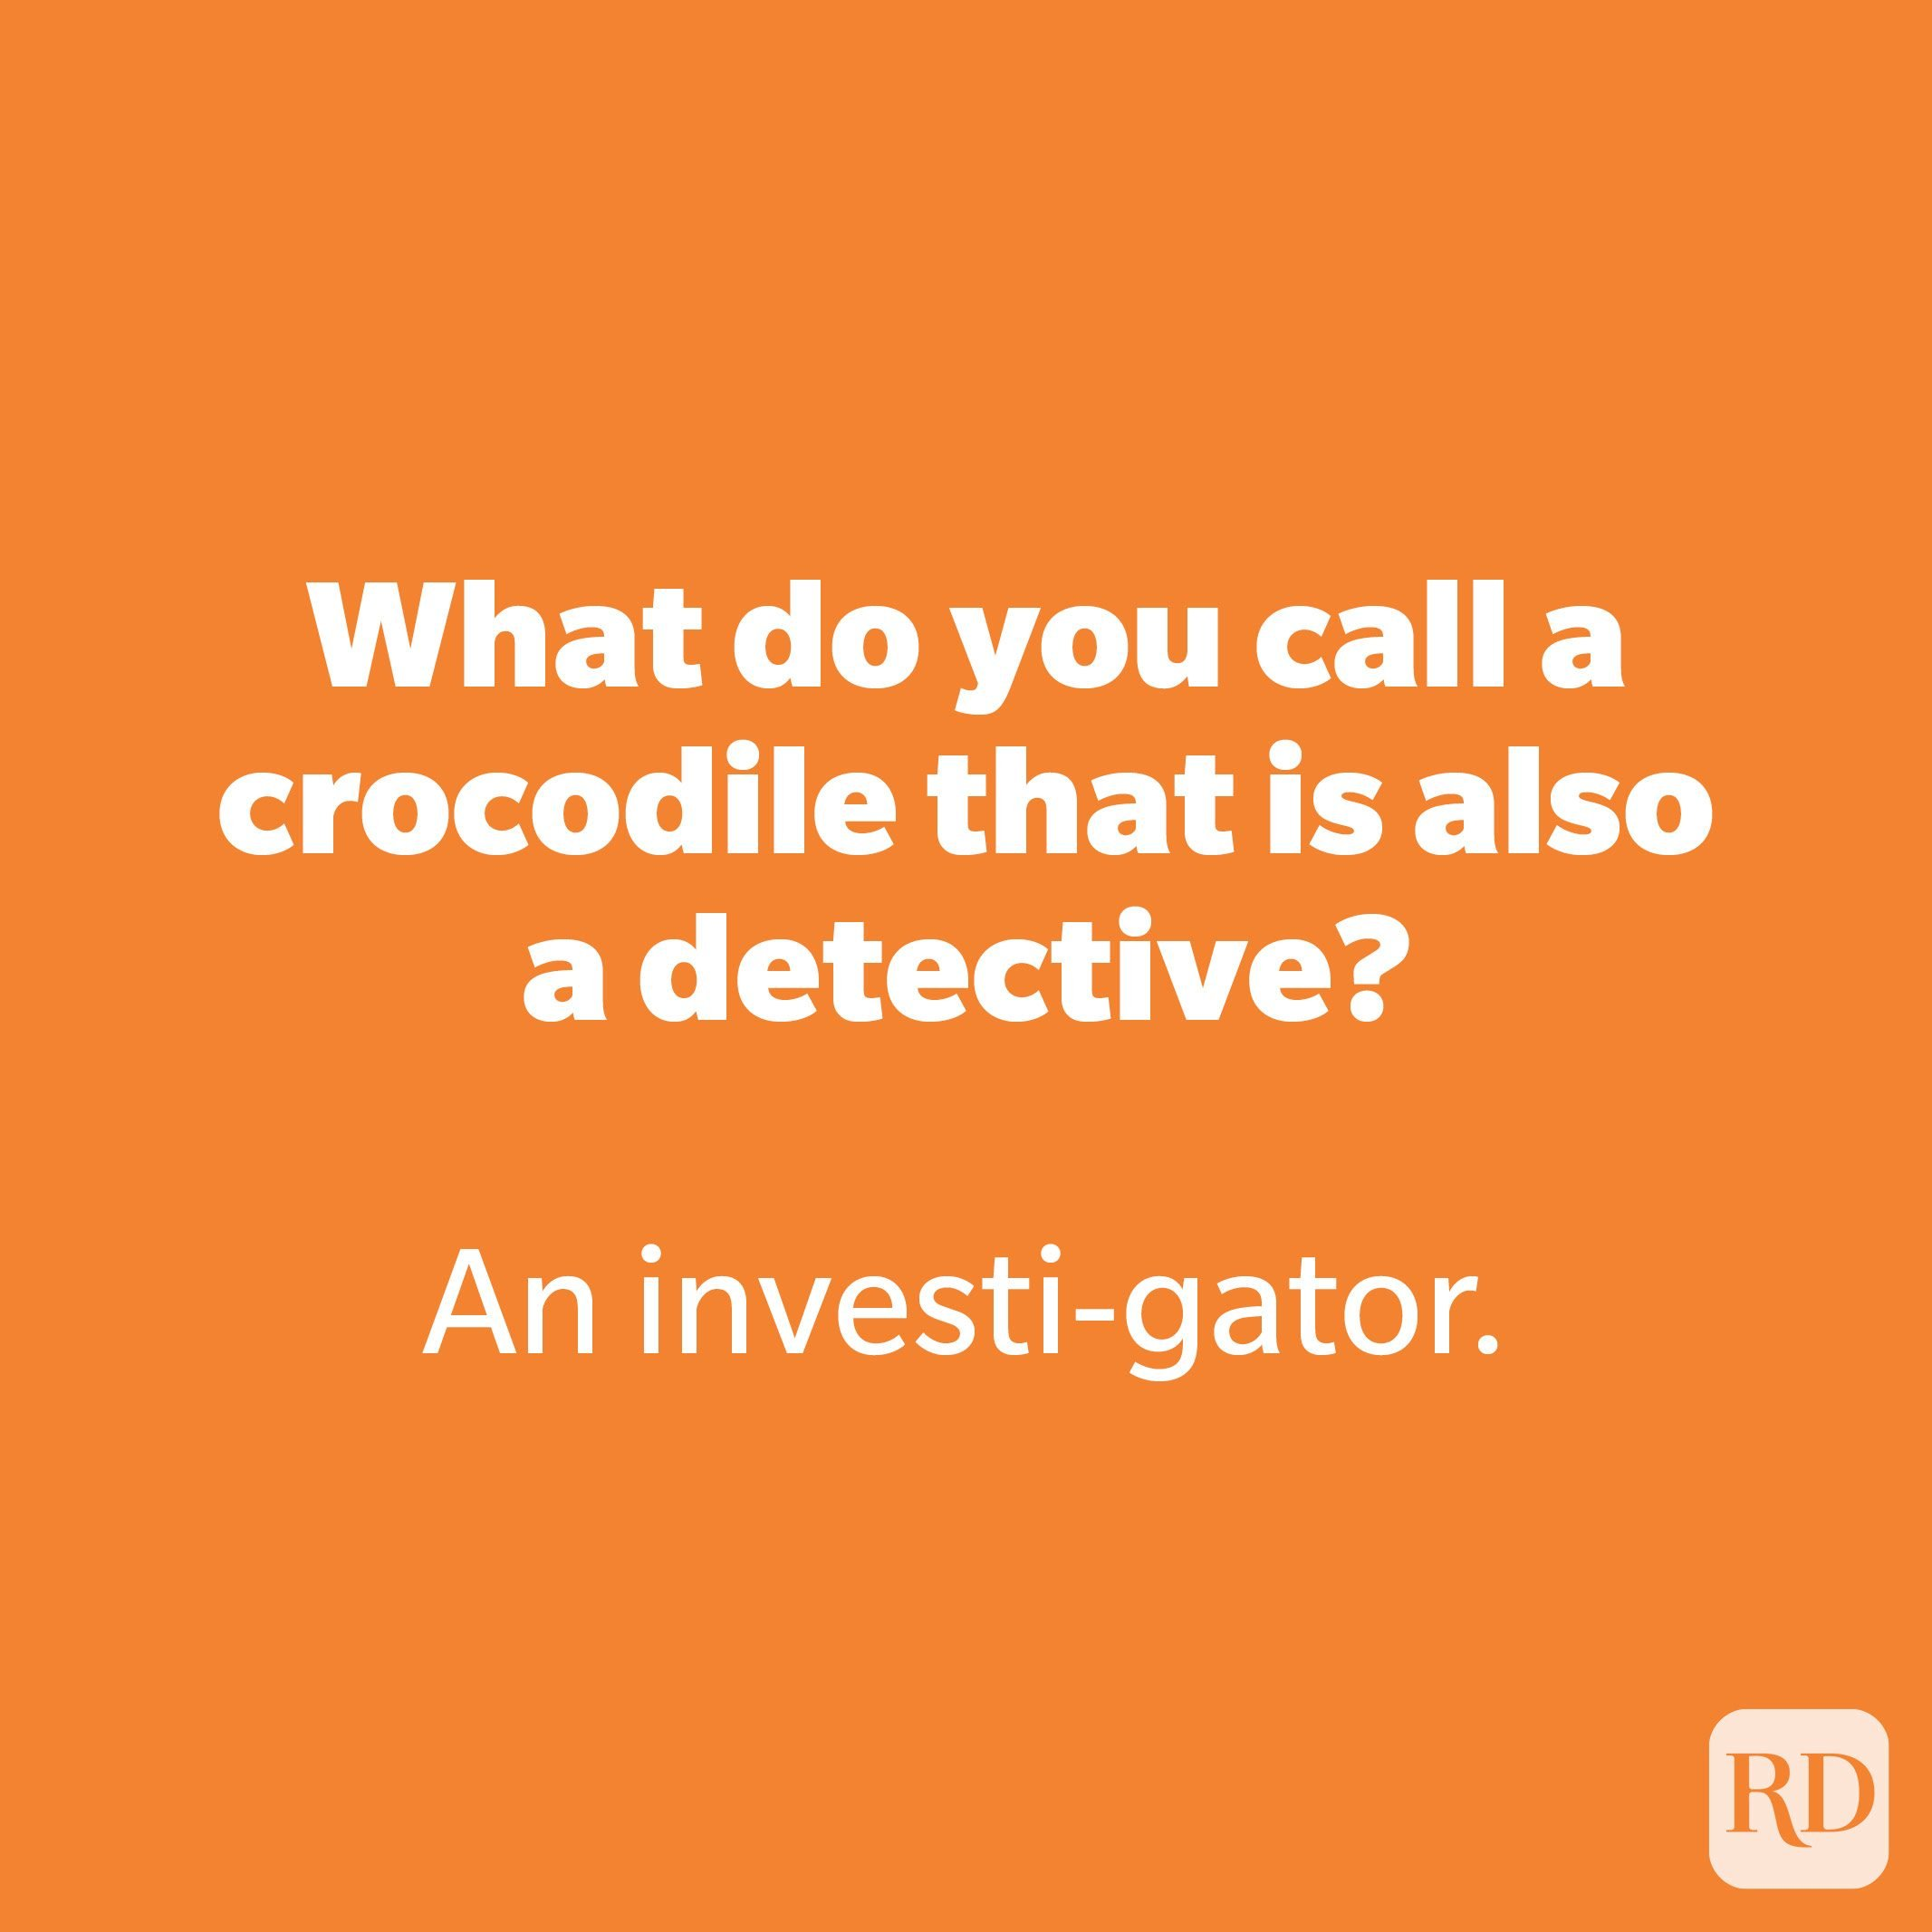 What do you call a crocodile that is also a detective?